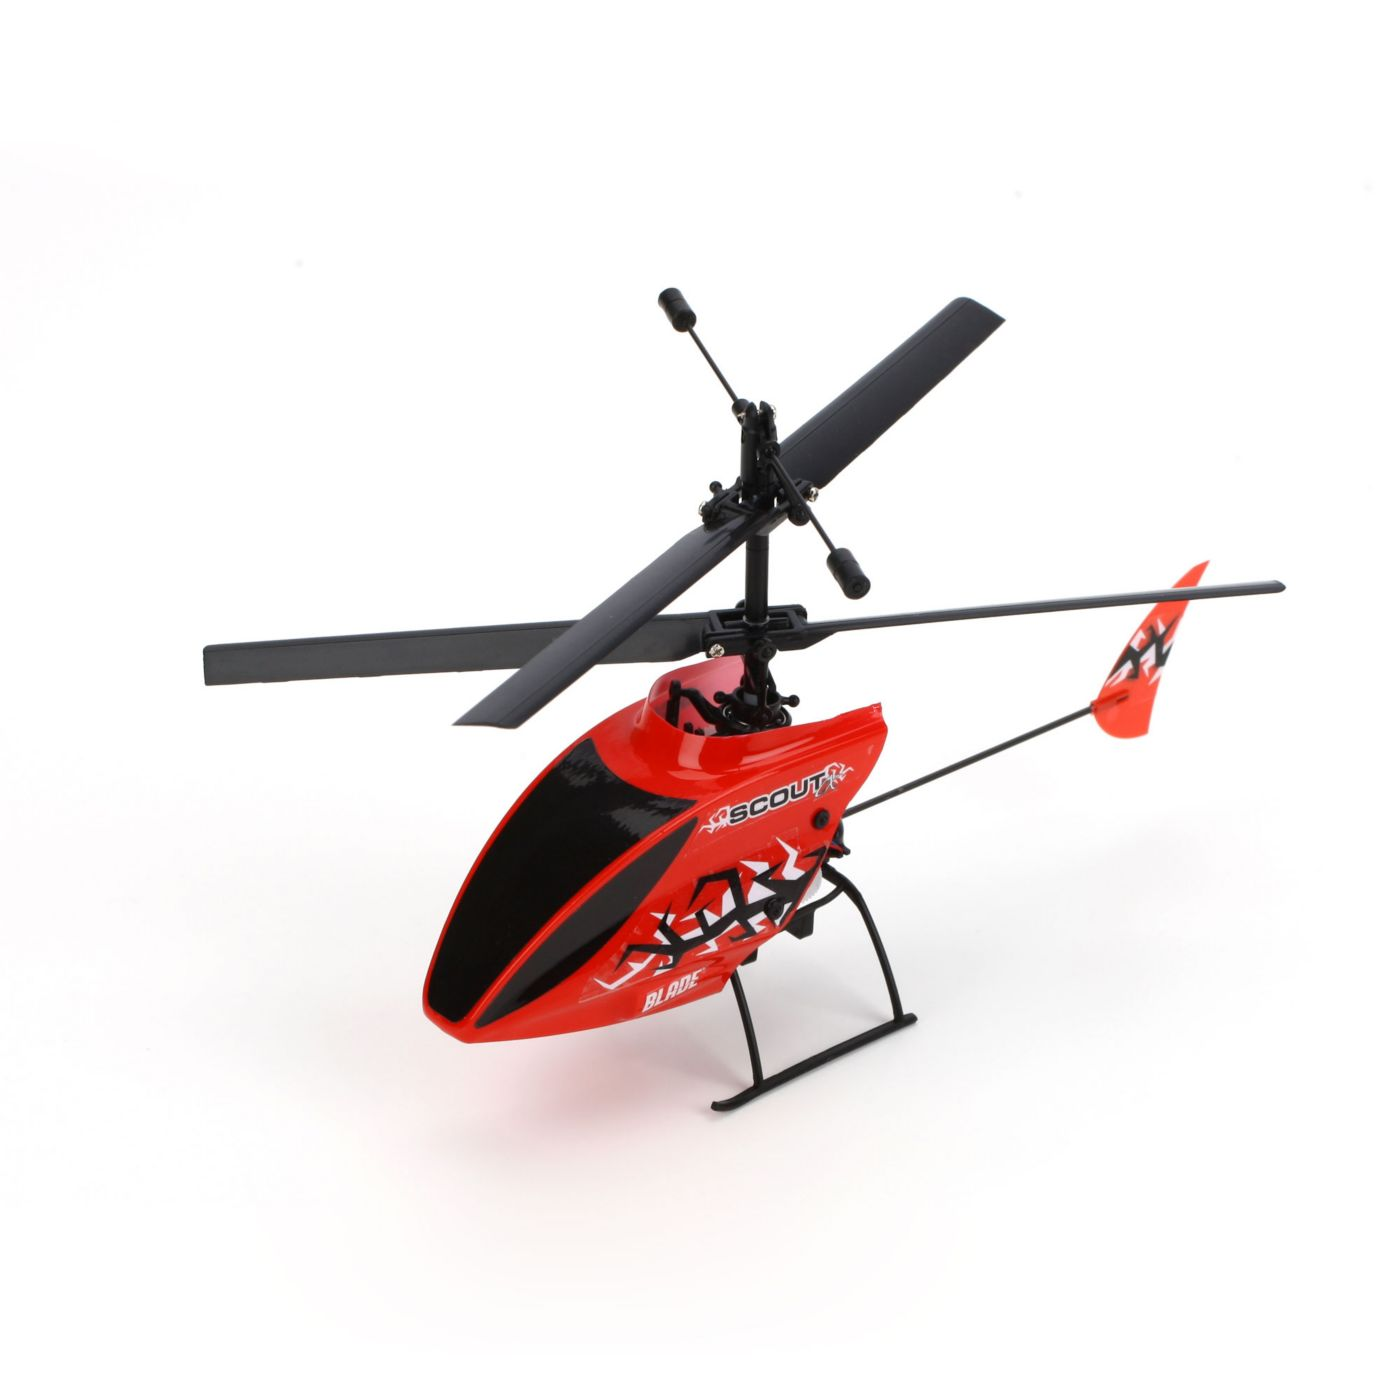 BLH2700 Scout CX RTF 3-Channel Helicopter